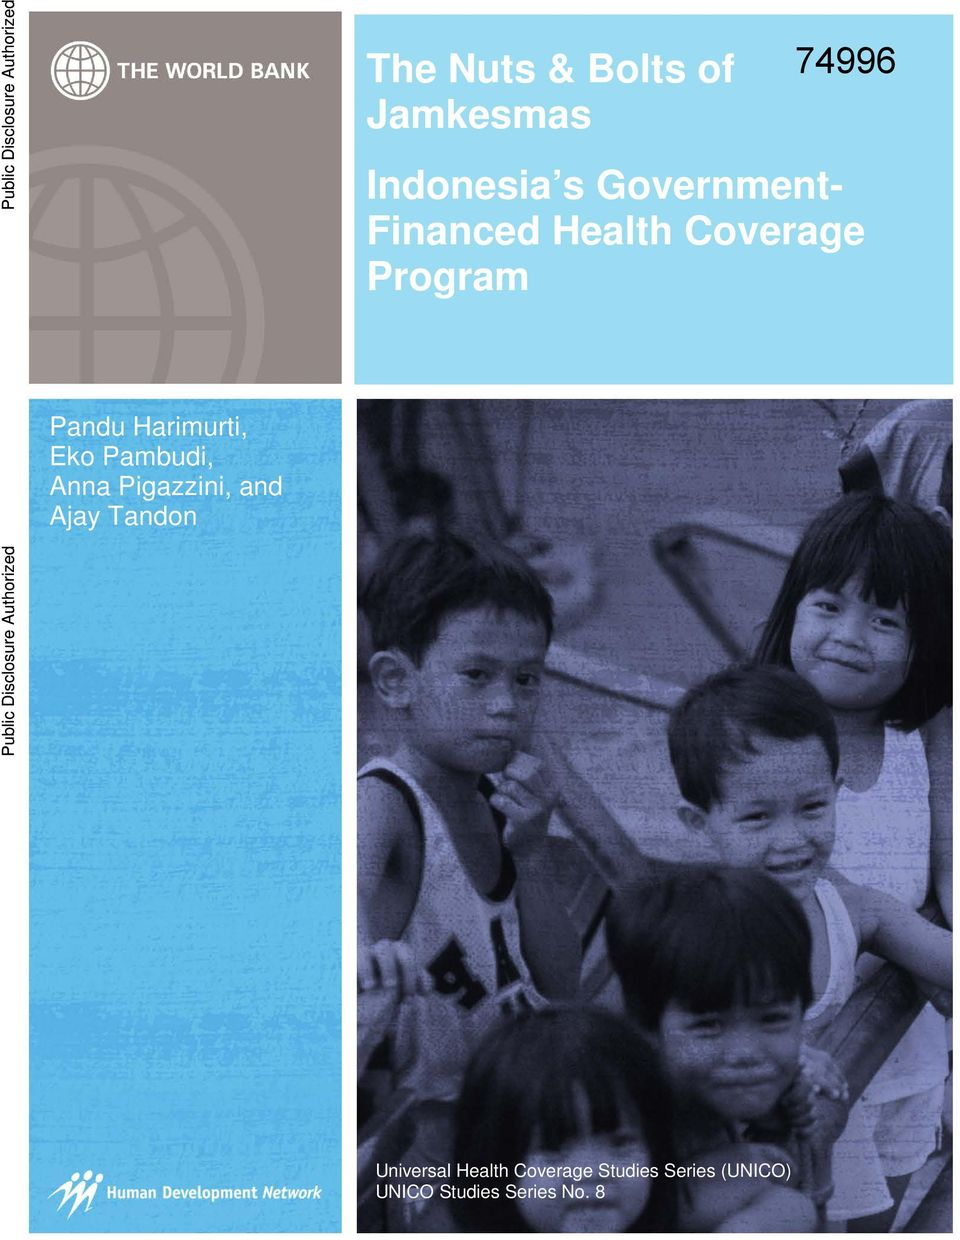 Pigazzini, and Ajay Tandon The Nuts & Bolts of Jamkesmas Indonesia s Government-